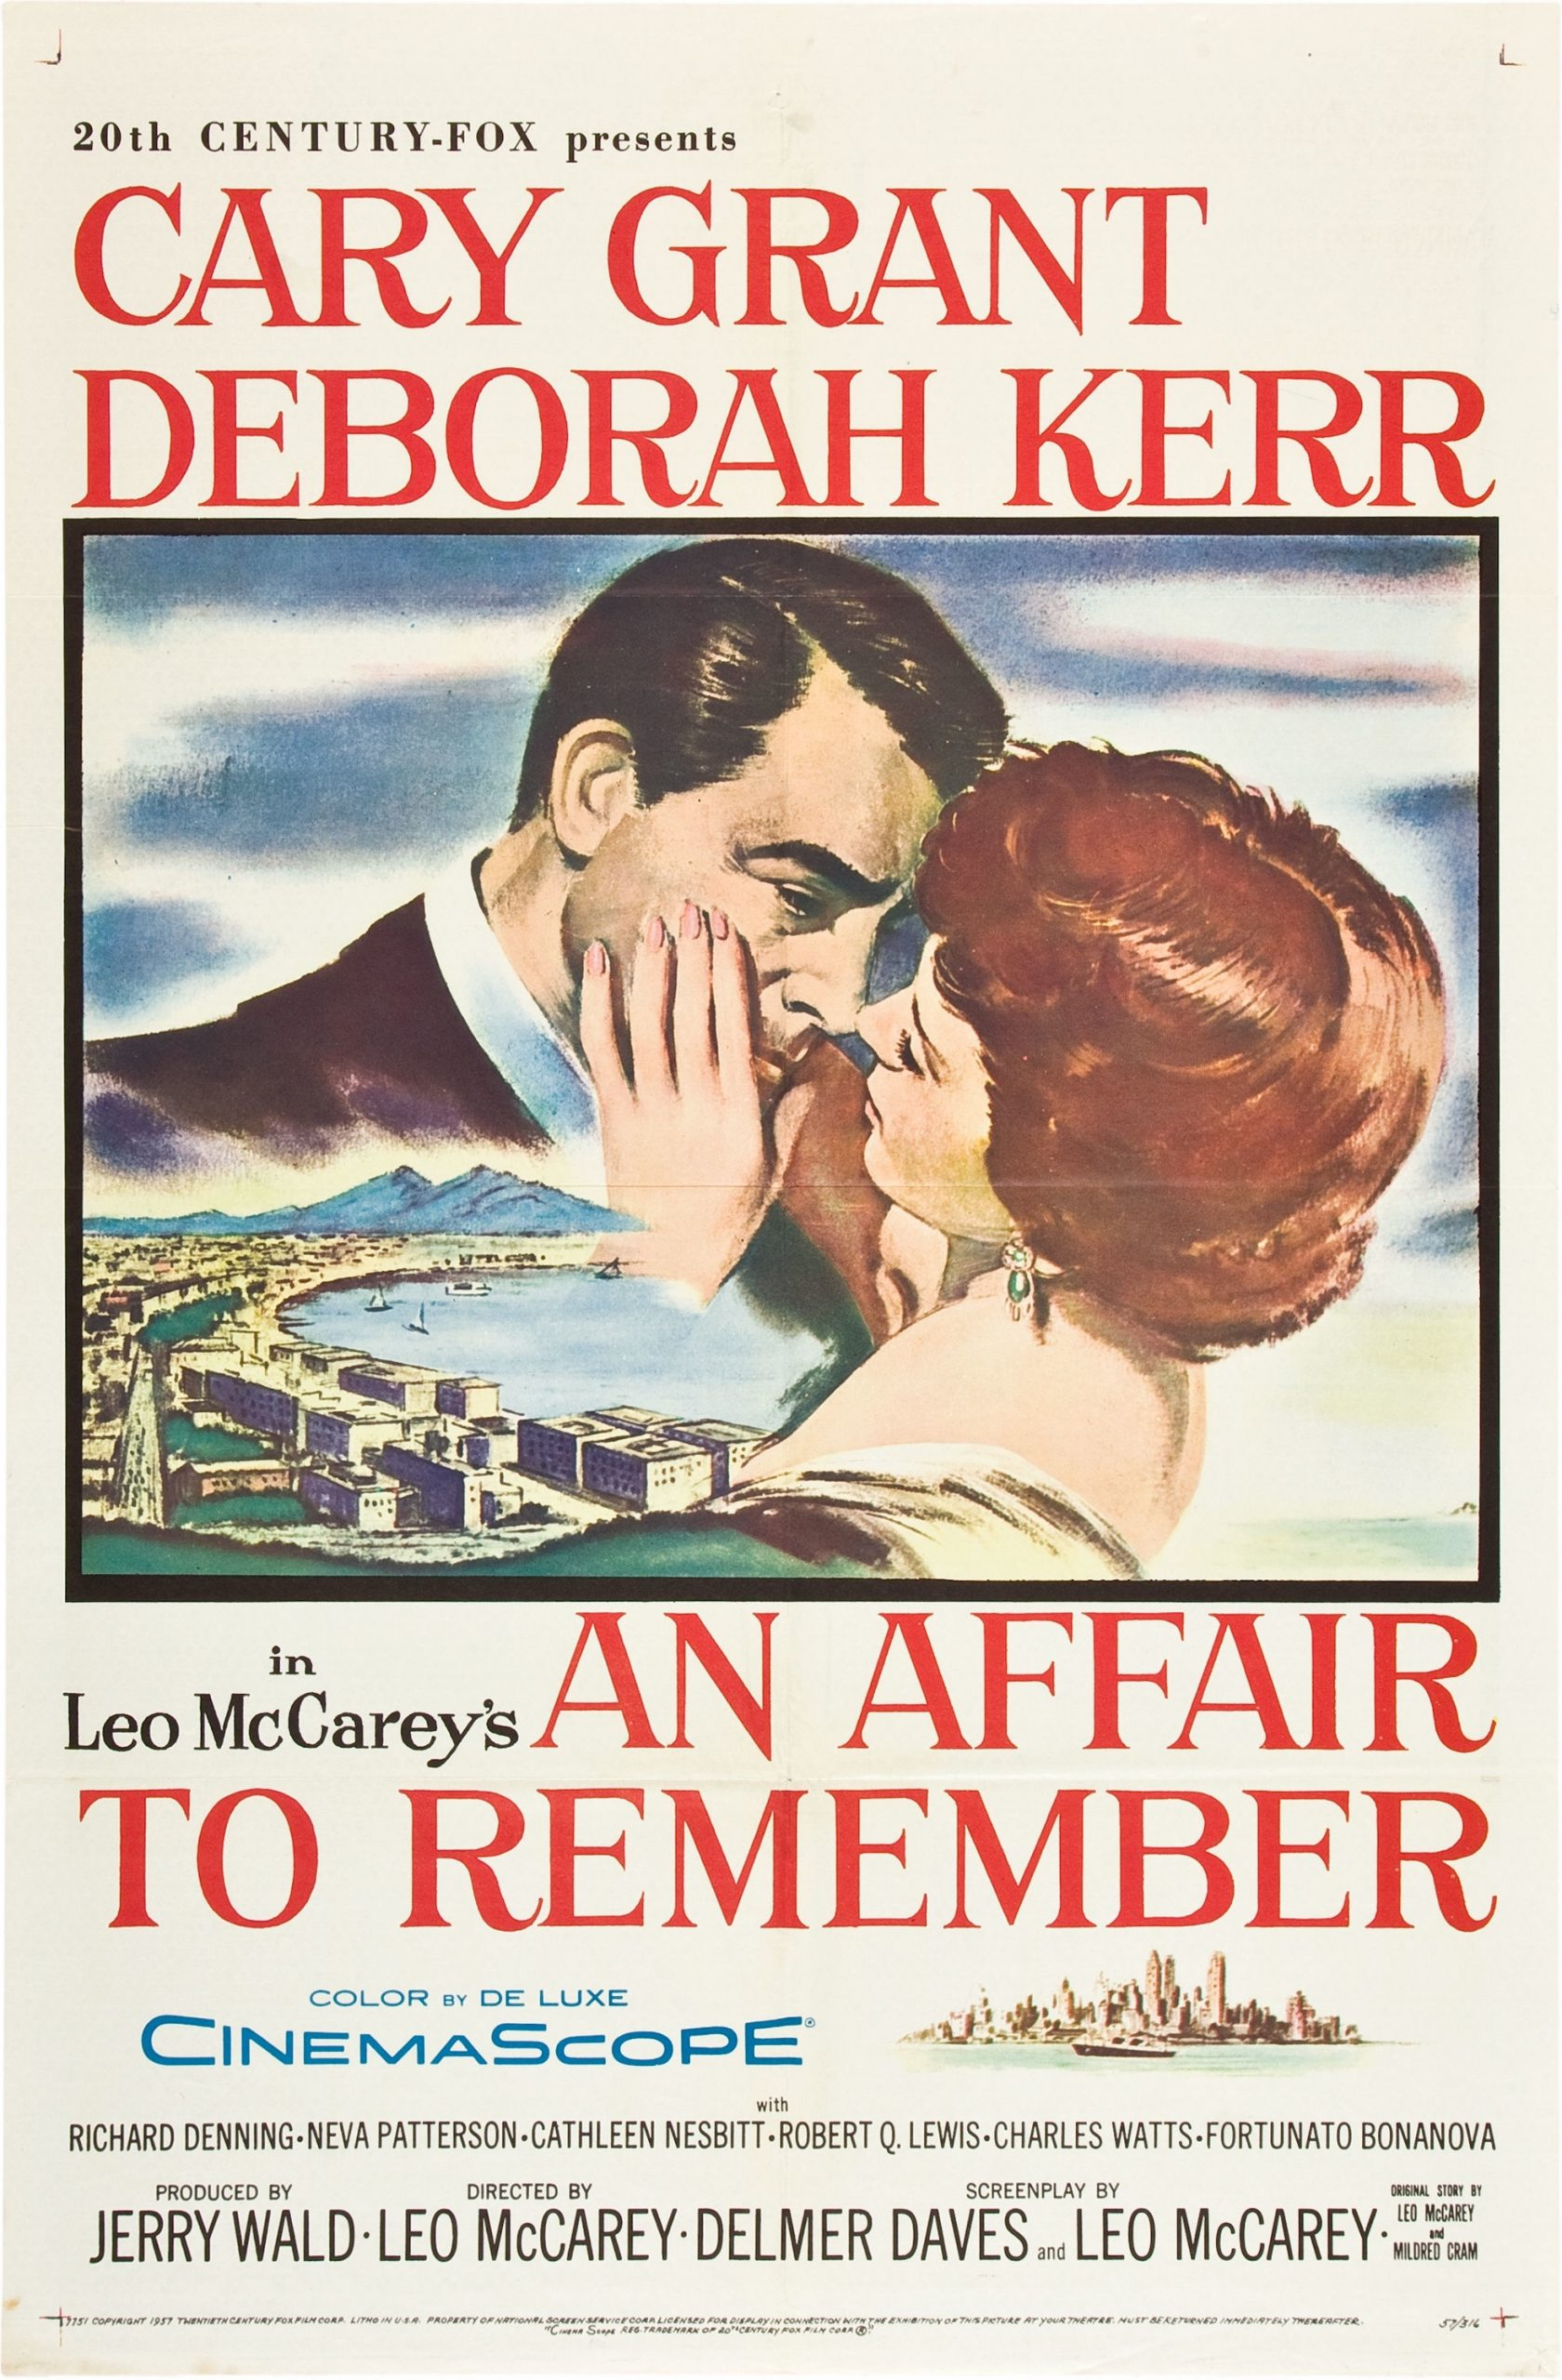 The poster for An Affair to Remember